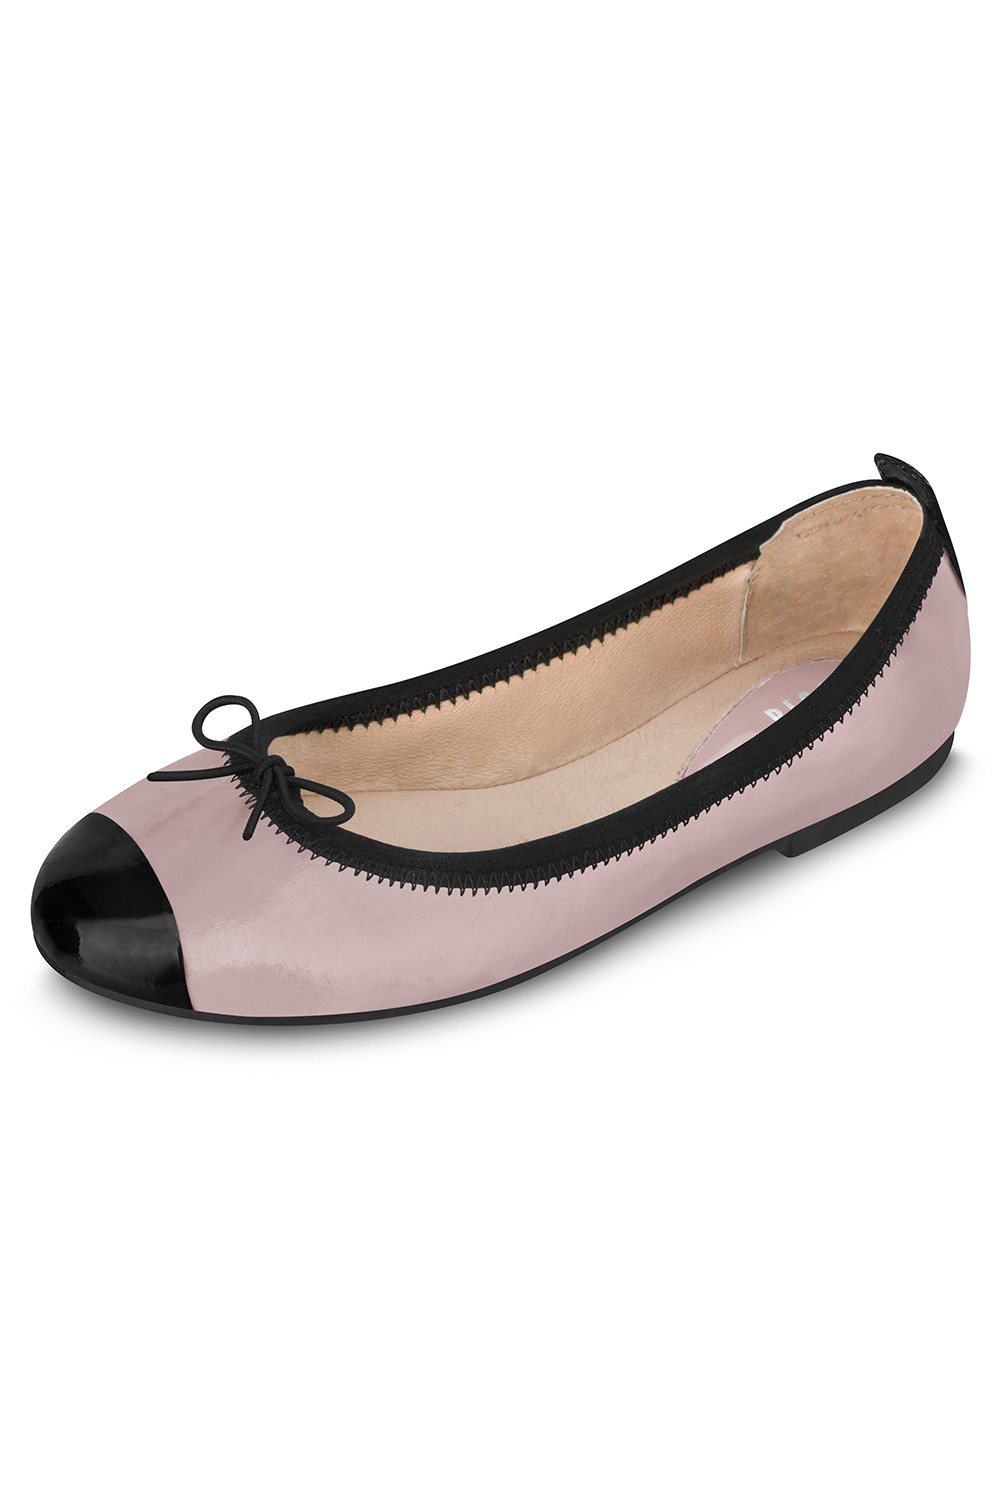 Luxury - Tween Girls Fashion Shoes